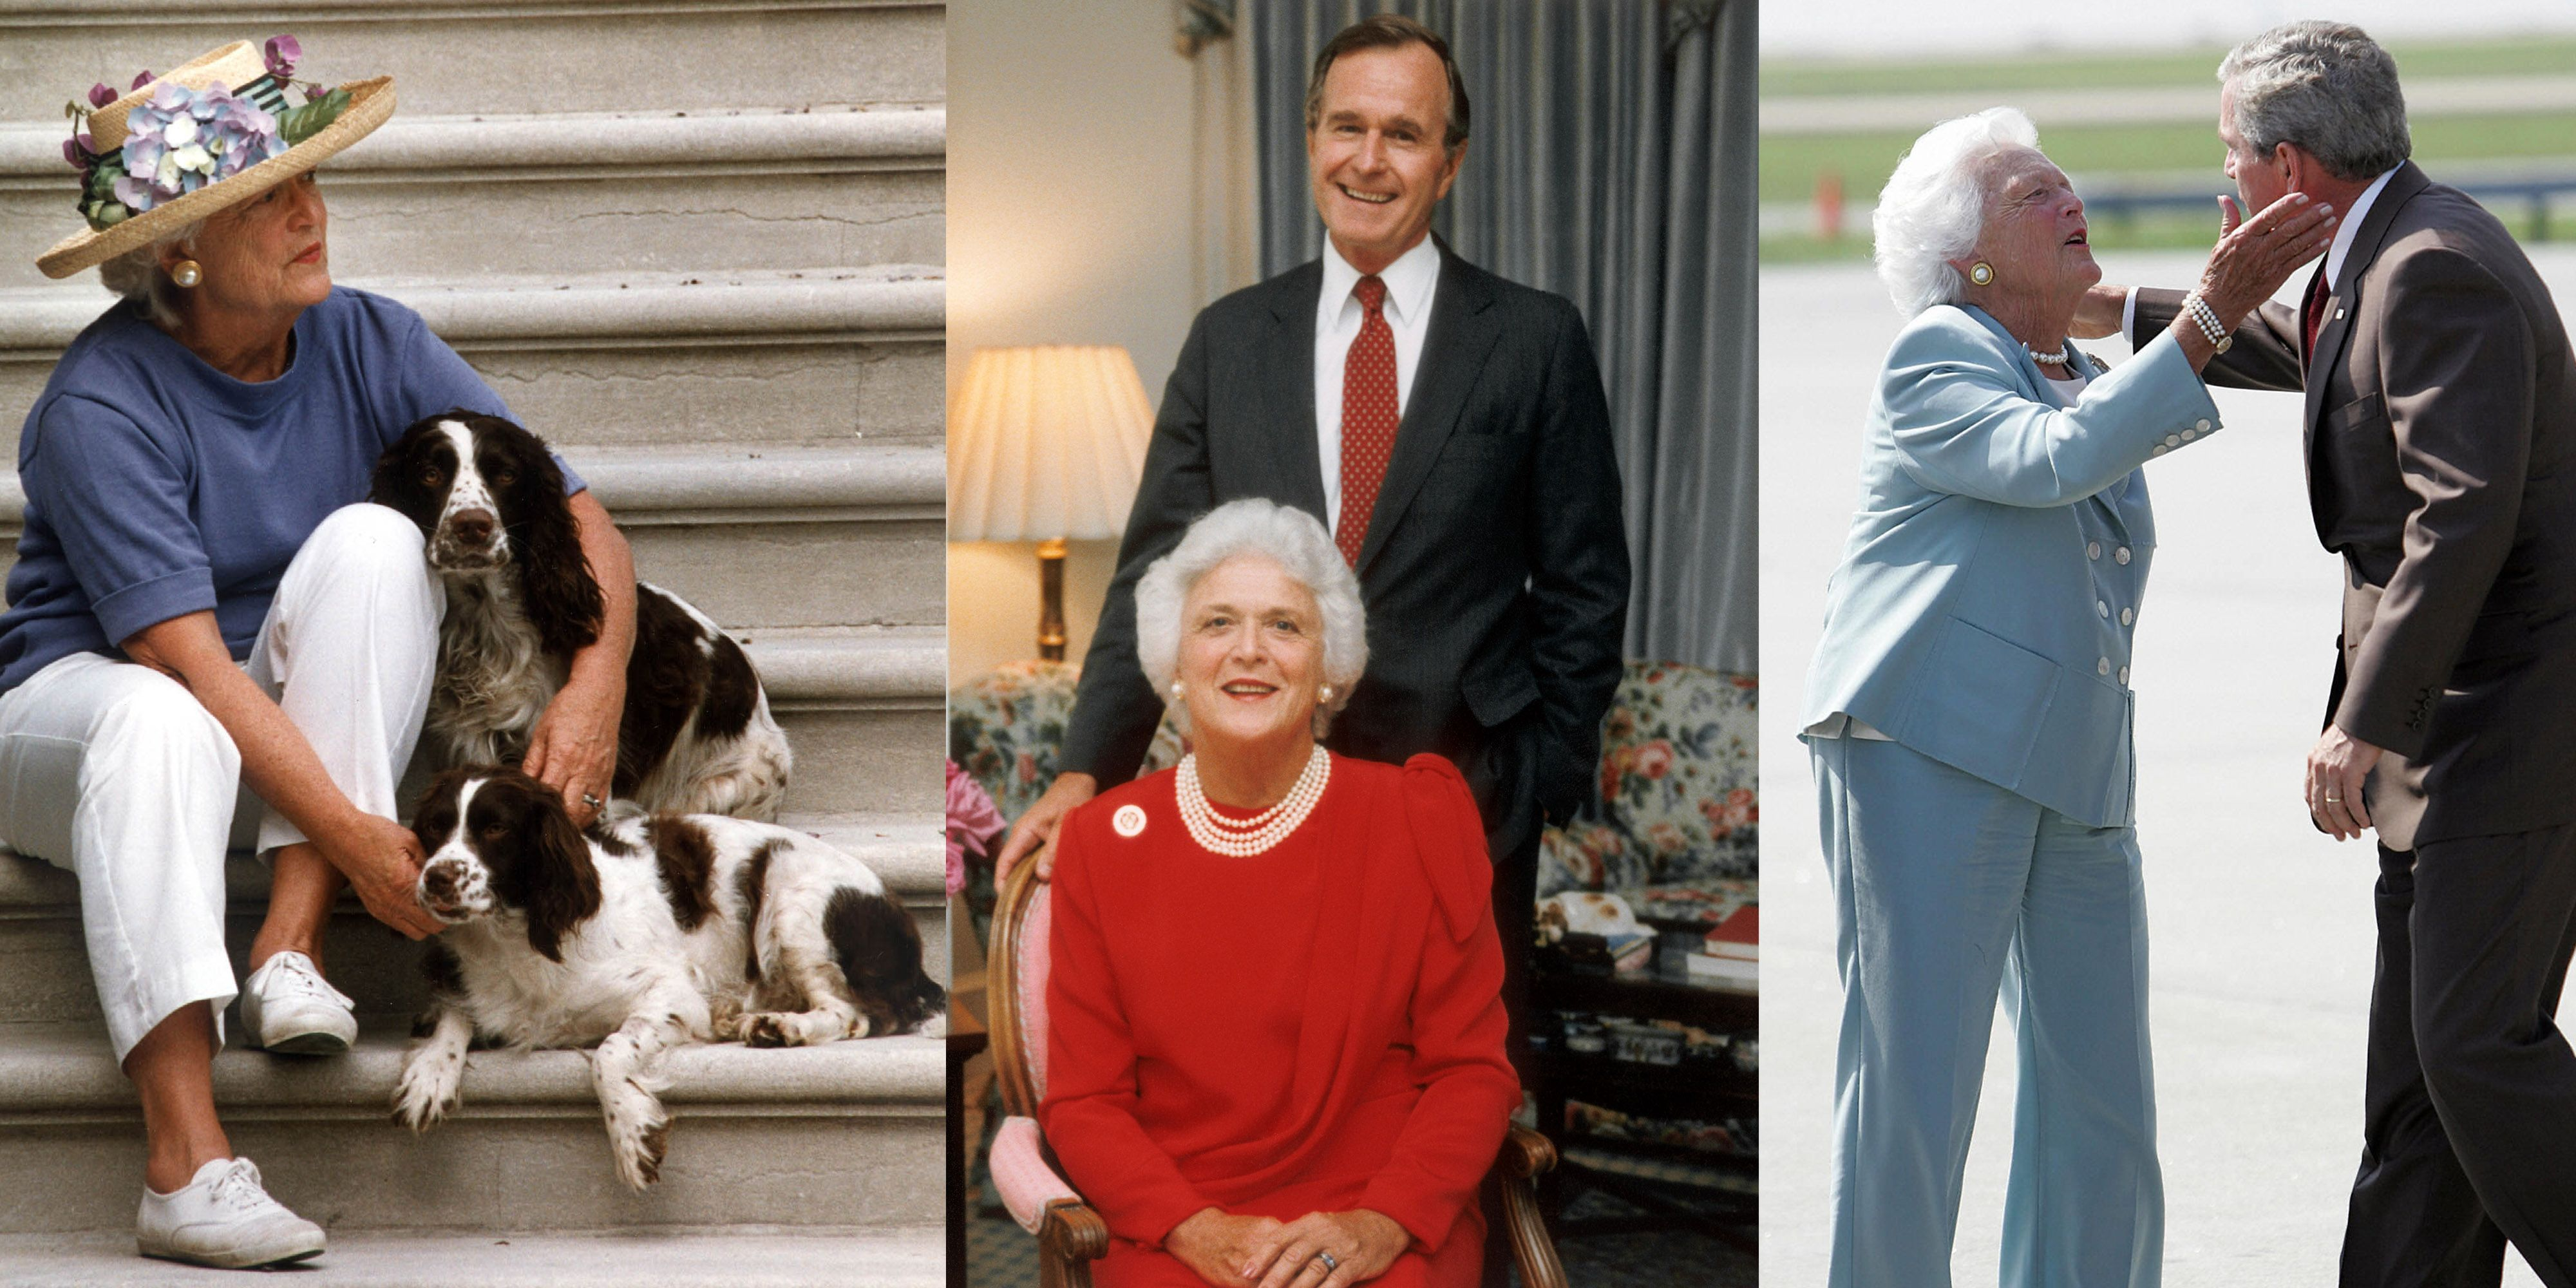 Barbara Bush S Life In Photos Pictures Of Young Barbara Bush To Now